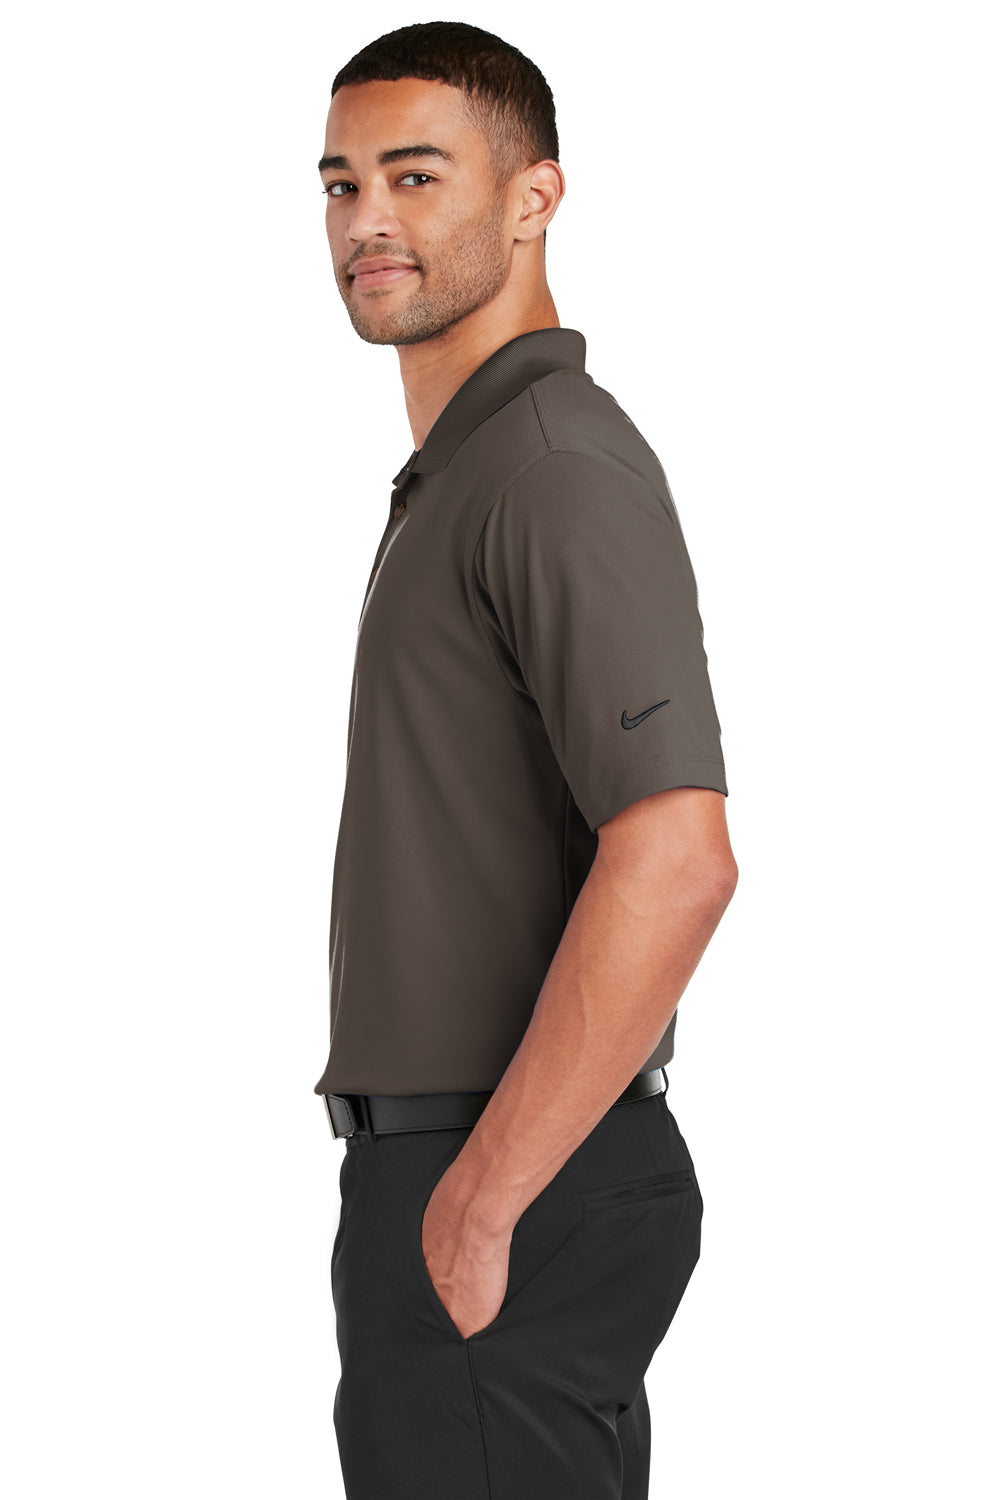 Nike 363807 Mens Dri-Fit Moisture Wicking Short Sleeve Polo Shirt Brown Side